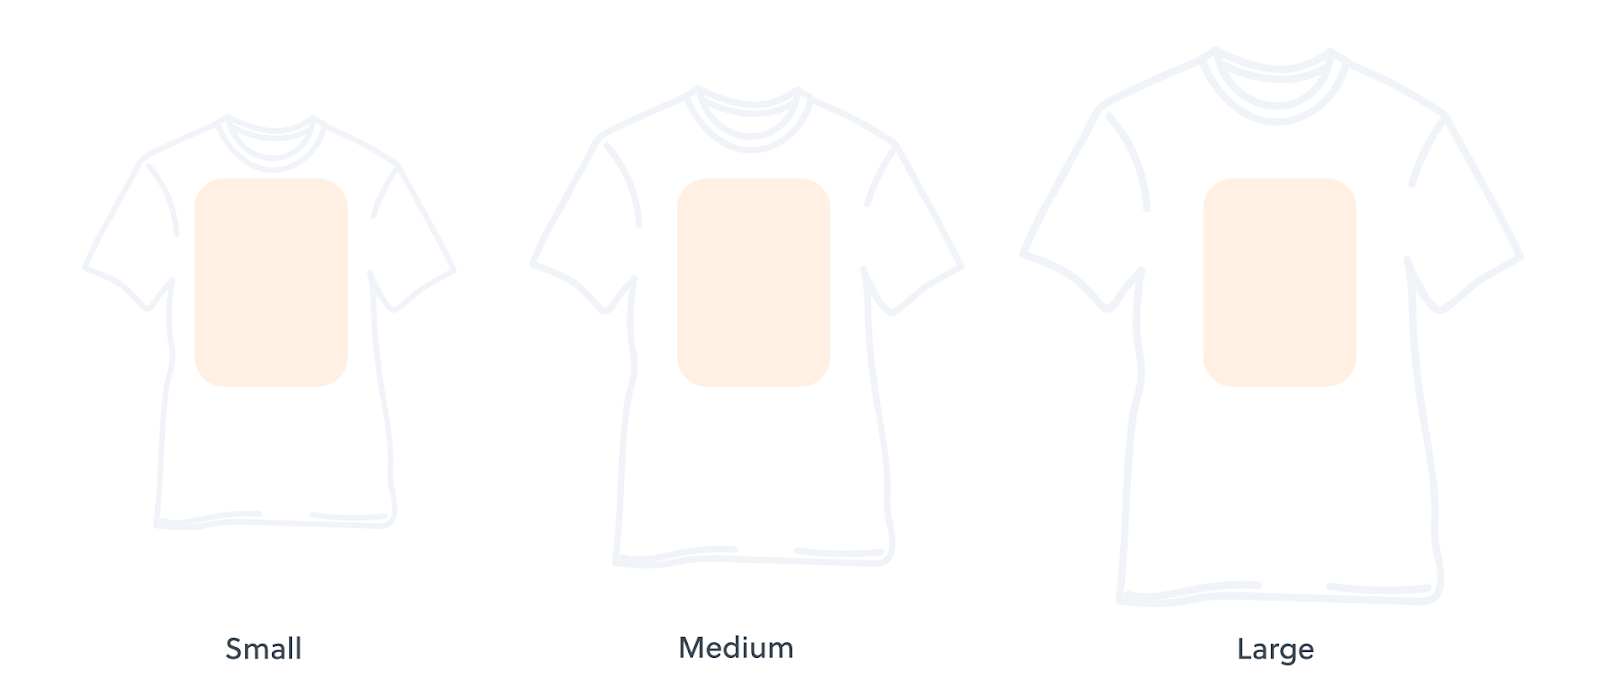 The printable area of a shirt that you can design on